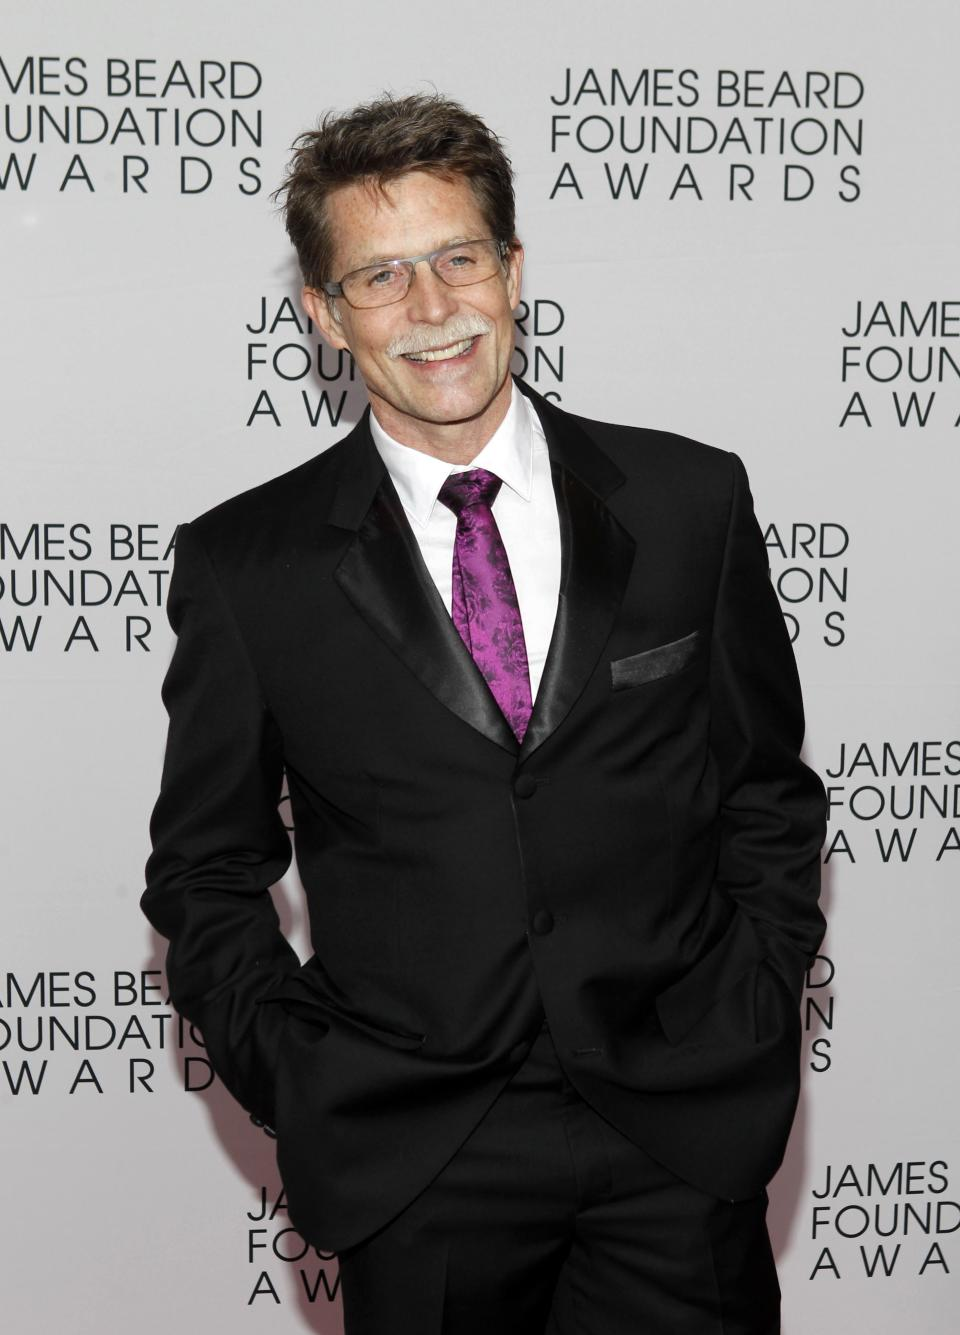 Chef Rick Bayless arrives for the James Beard Foundation Awards, Monday, May 7, 2012, in New York. (AP Photo/Jason DeCrow)